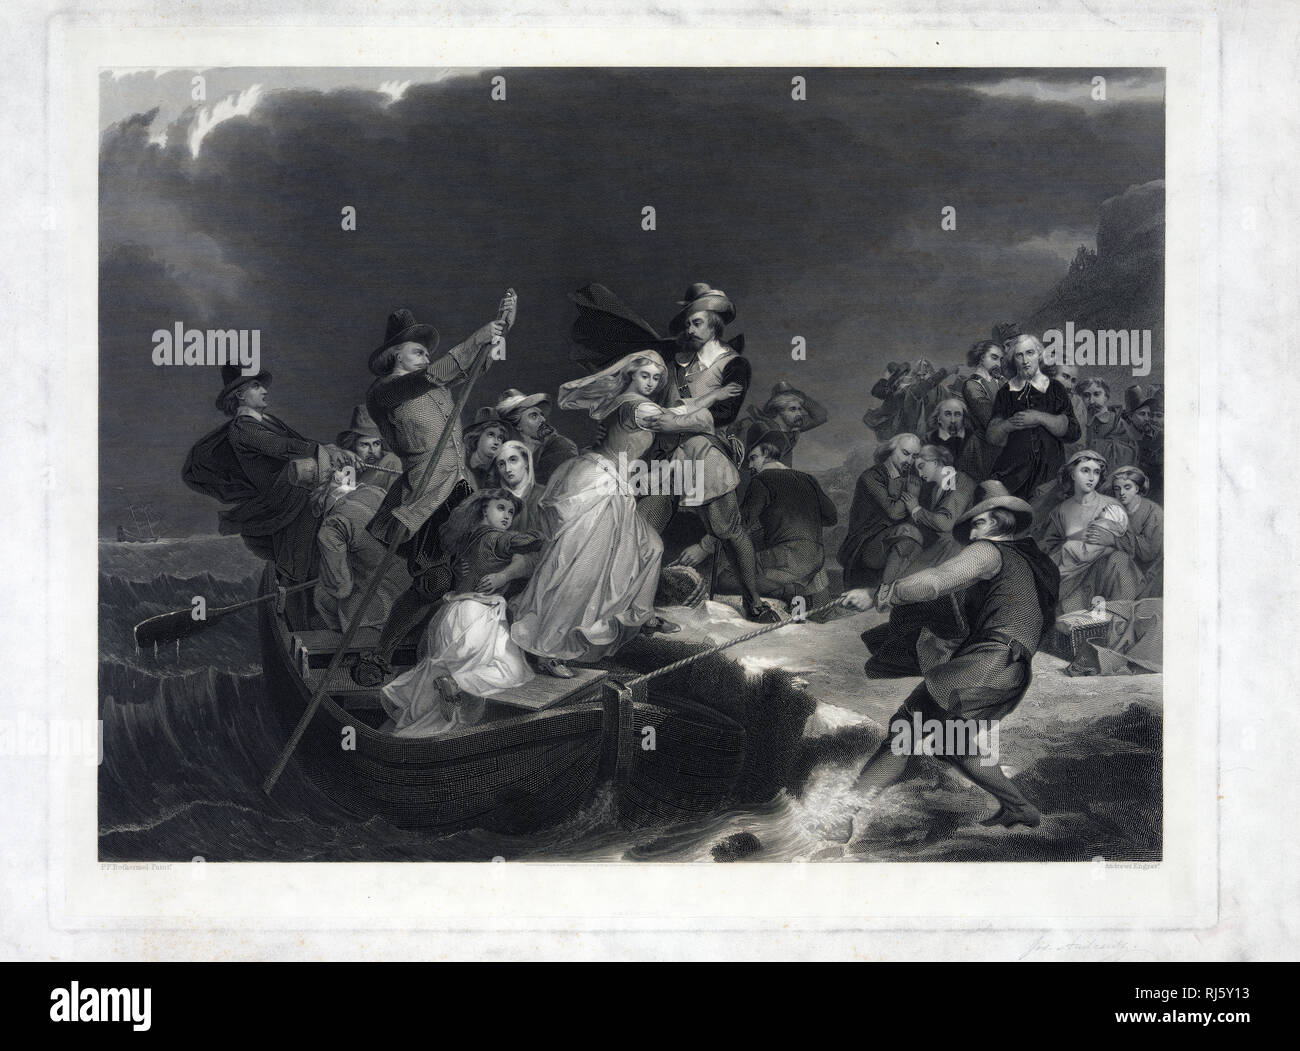 Print showing a woman being helped ashore from a small boat held in